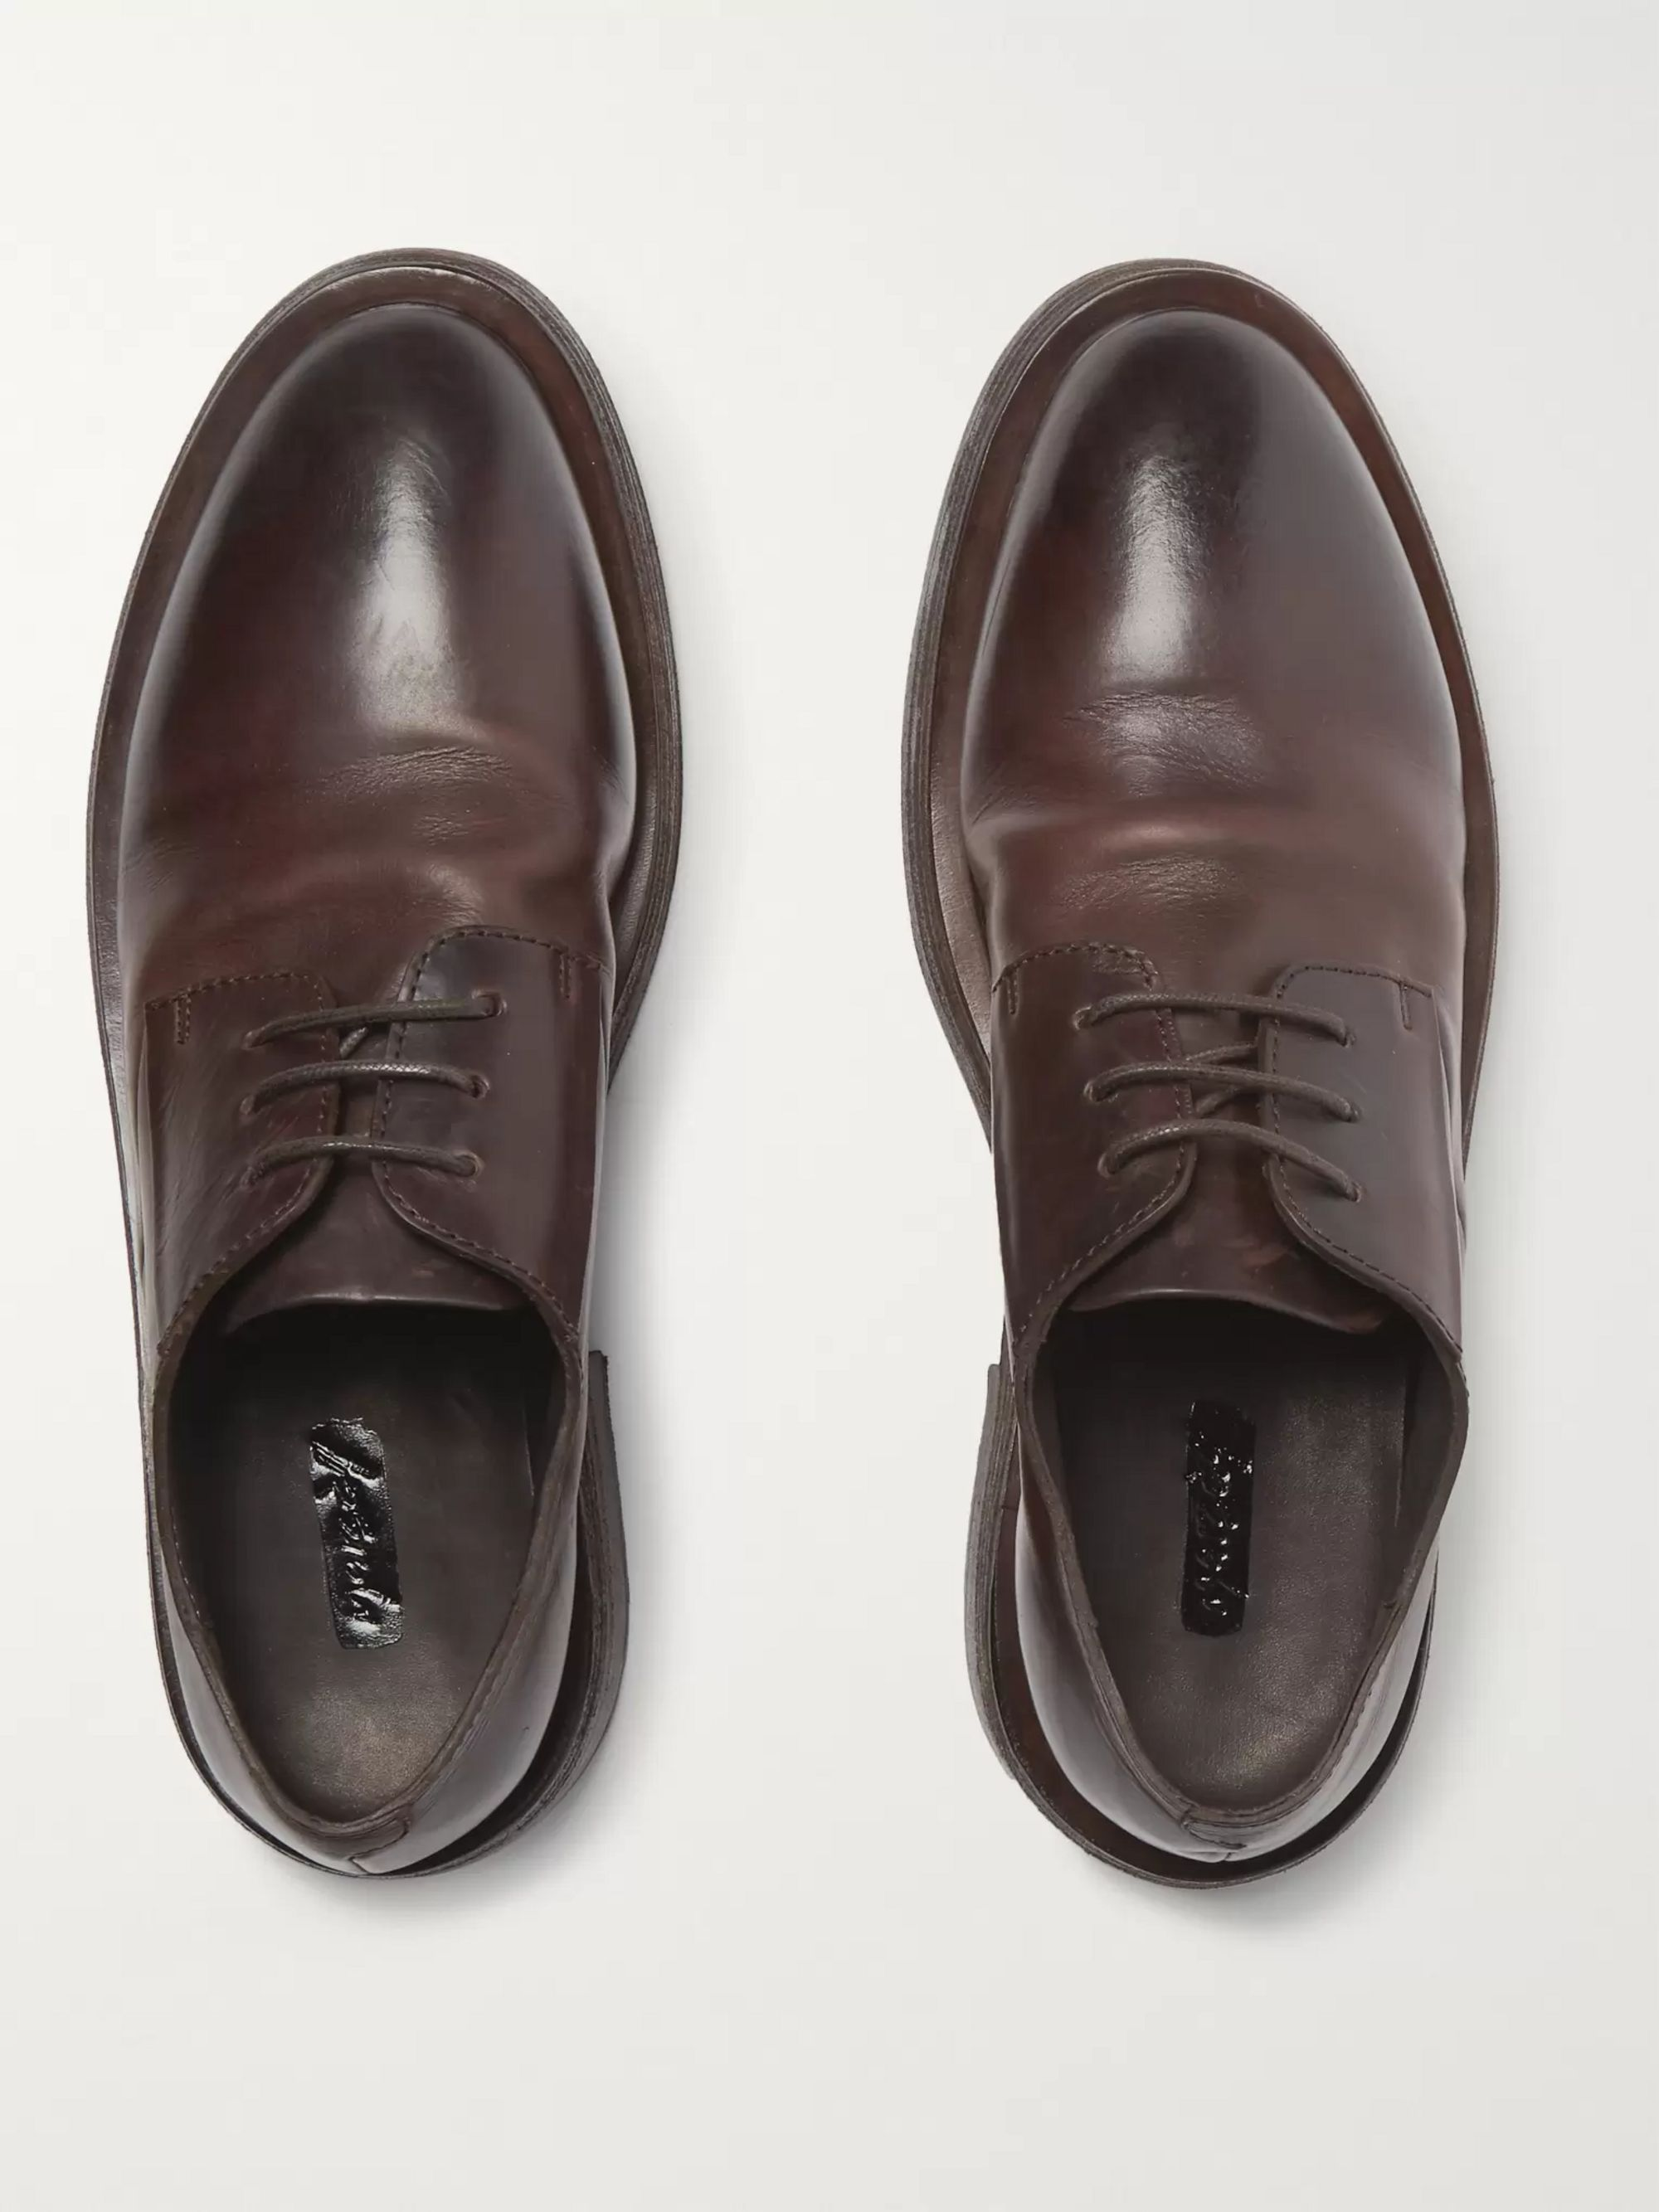 Marsell Mentone Leather Derby Shoes